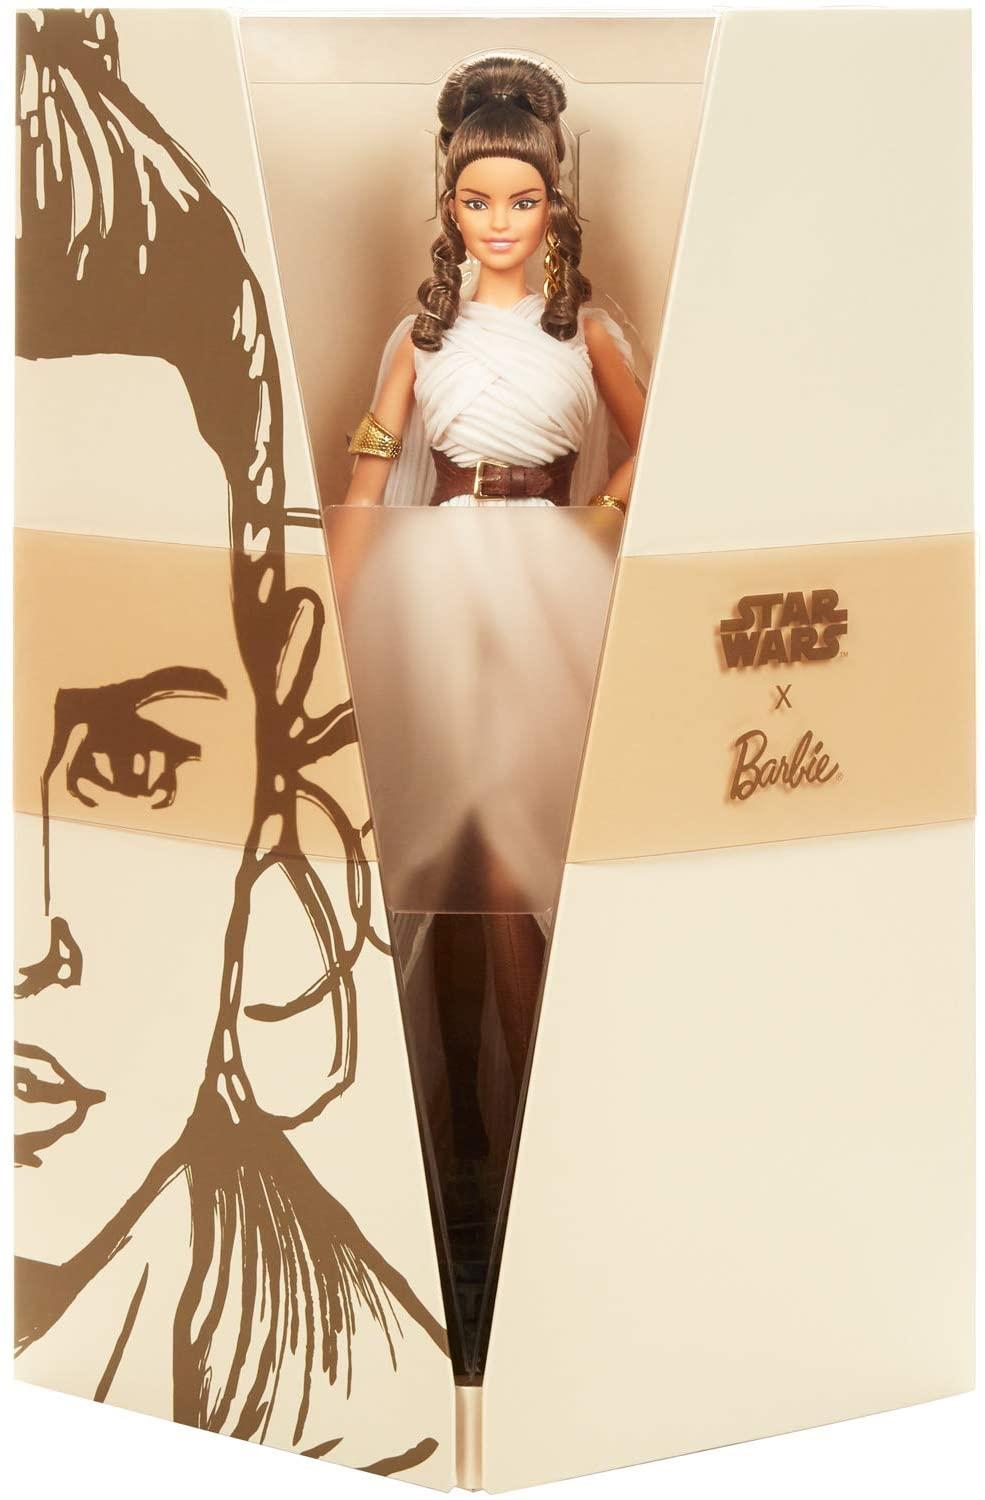 Barbie Signature Entertainment Star Wars Rey X Puppe